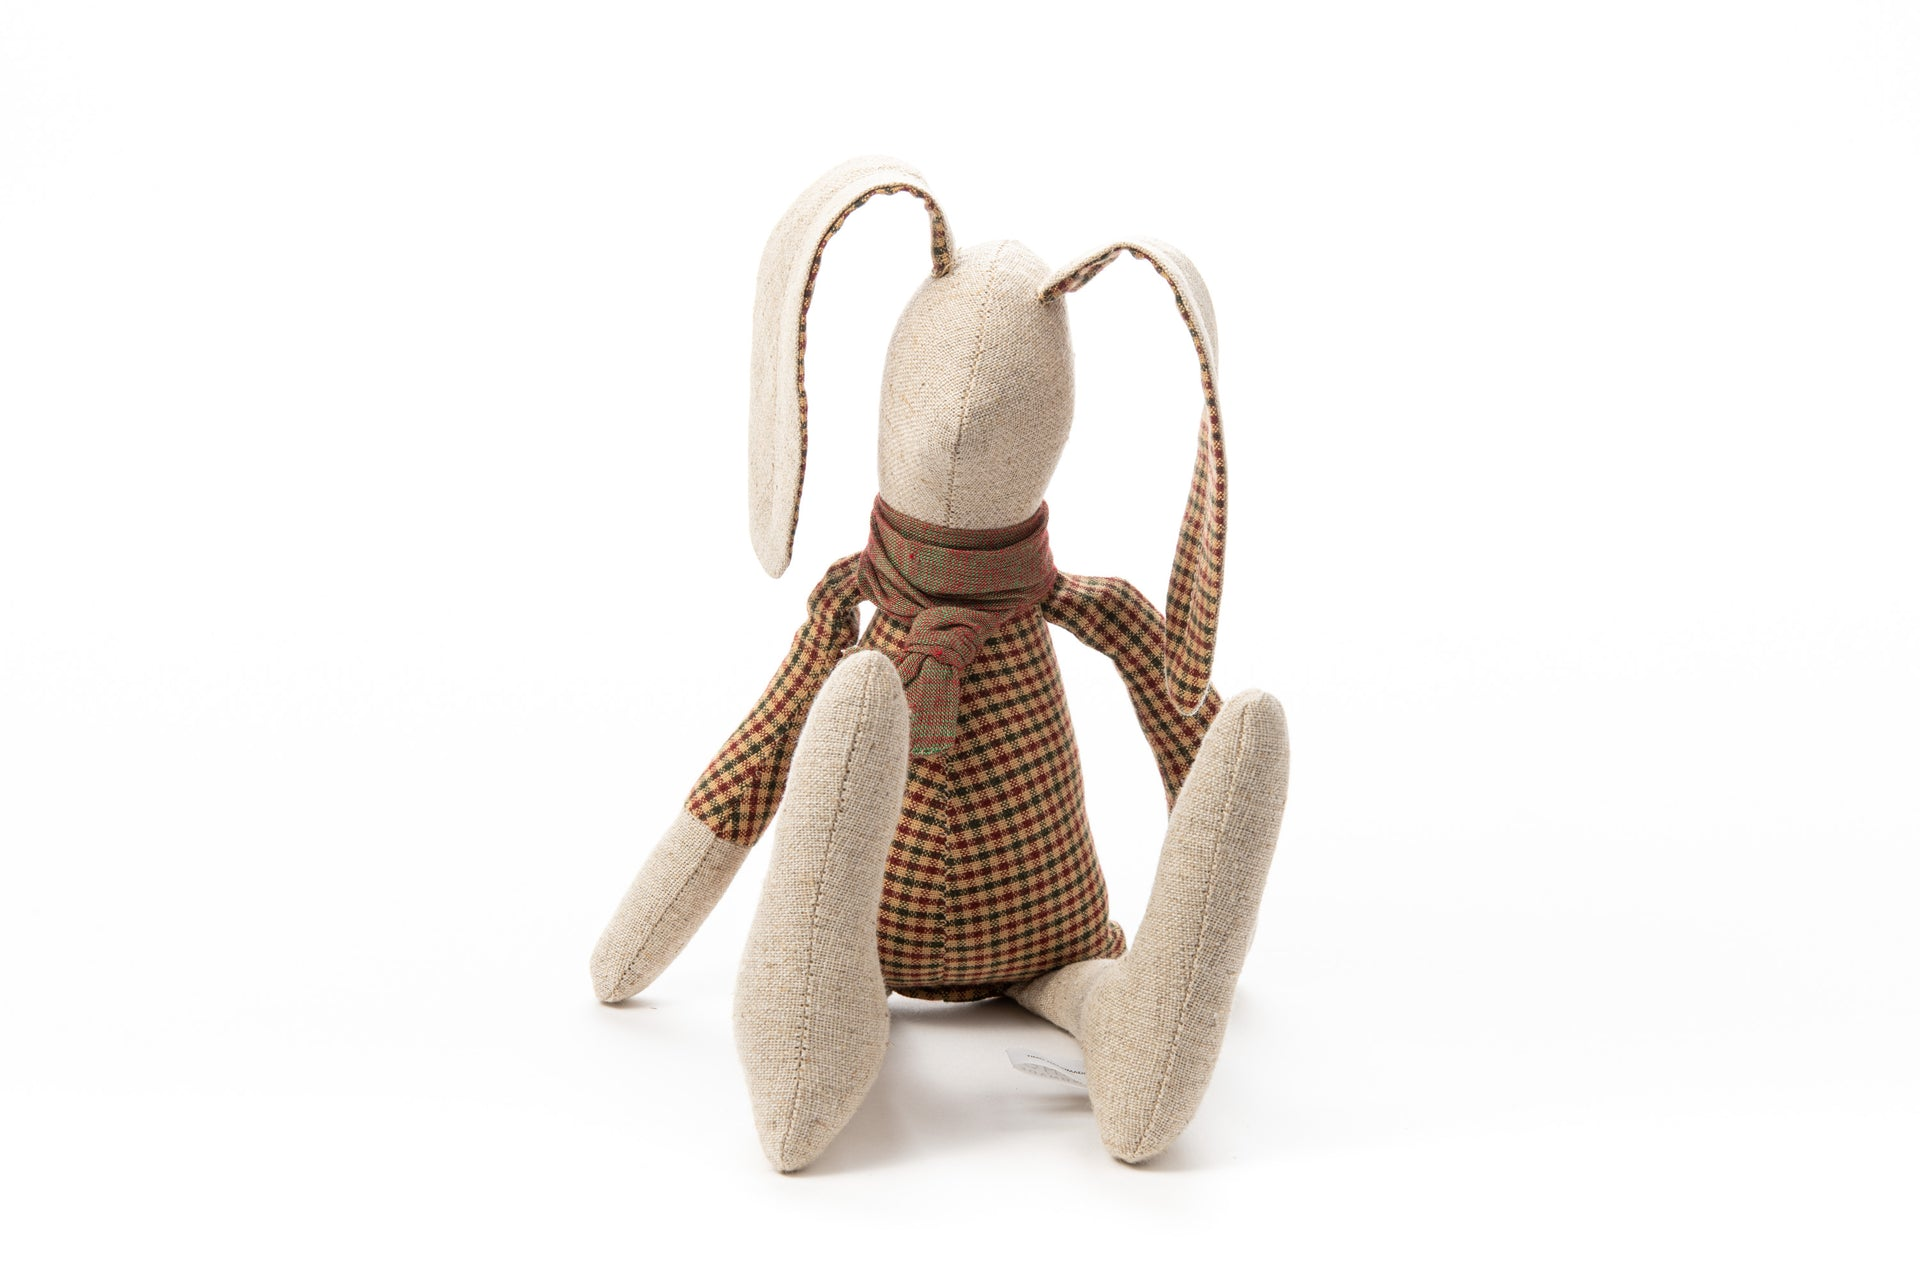 Handmad doll, Rabbit doll, Fabric doll, Stuffed animal, Handmade bunny, Eco friendly gift, Soft toy, Zero waste gift, Home Decor toy, Hare